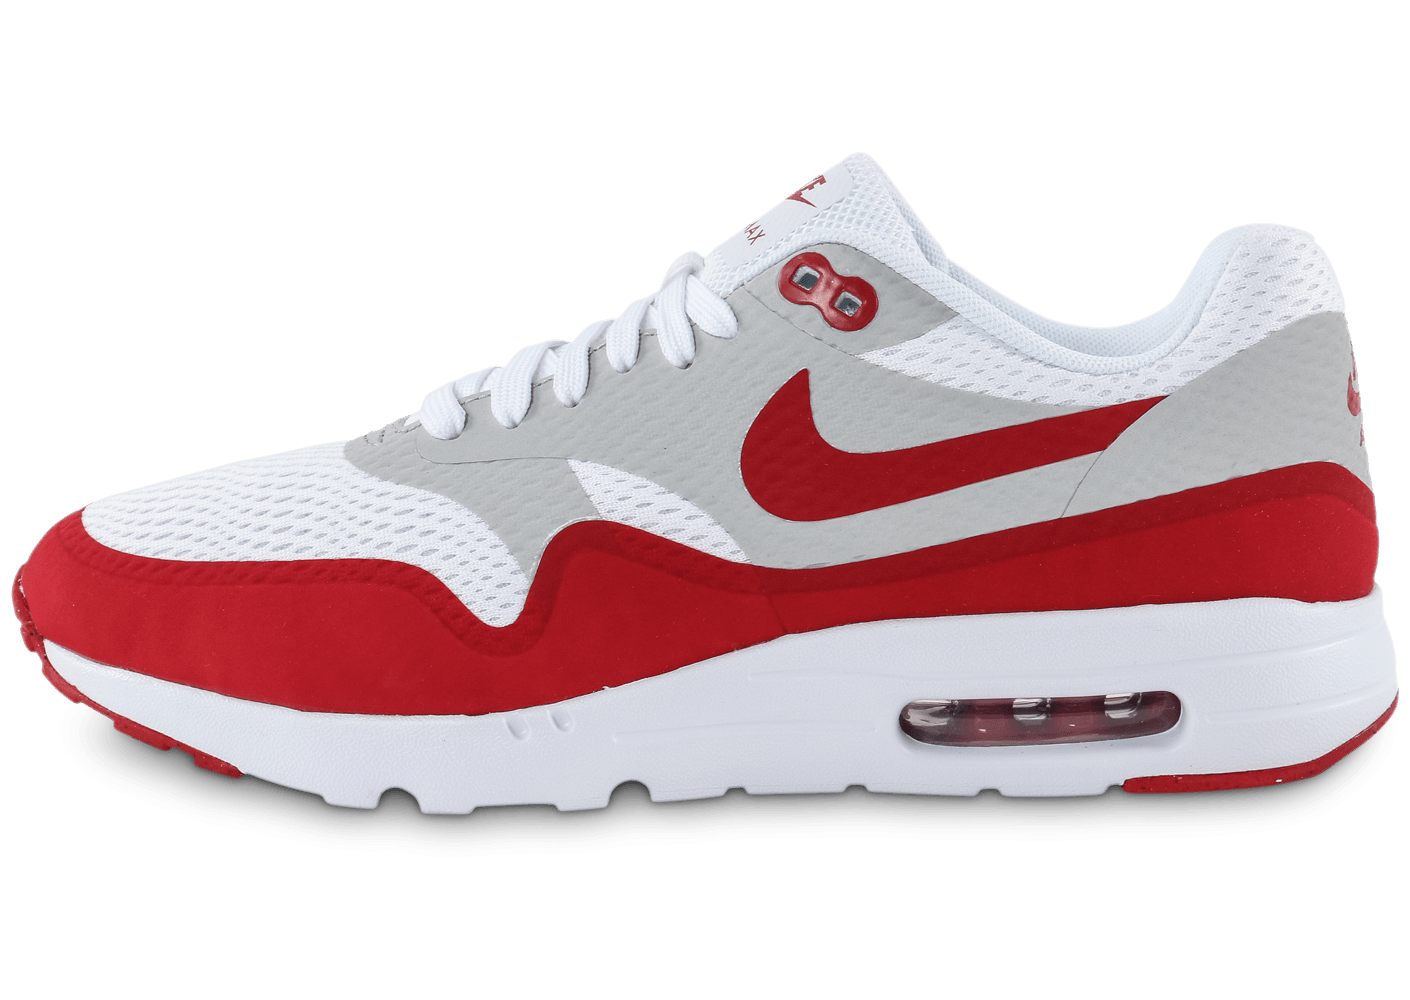 soldes nike air max 1 ultra essential blanc rouge chaussures homme chausport. Black Bedroom Furniture Sets. Home Design Ideas